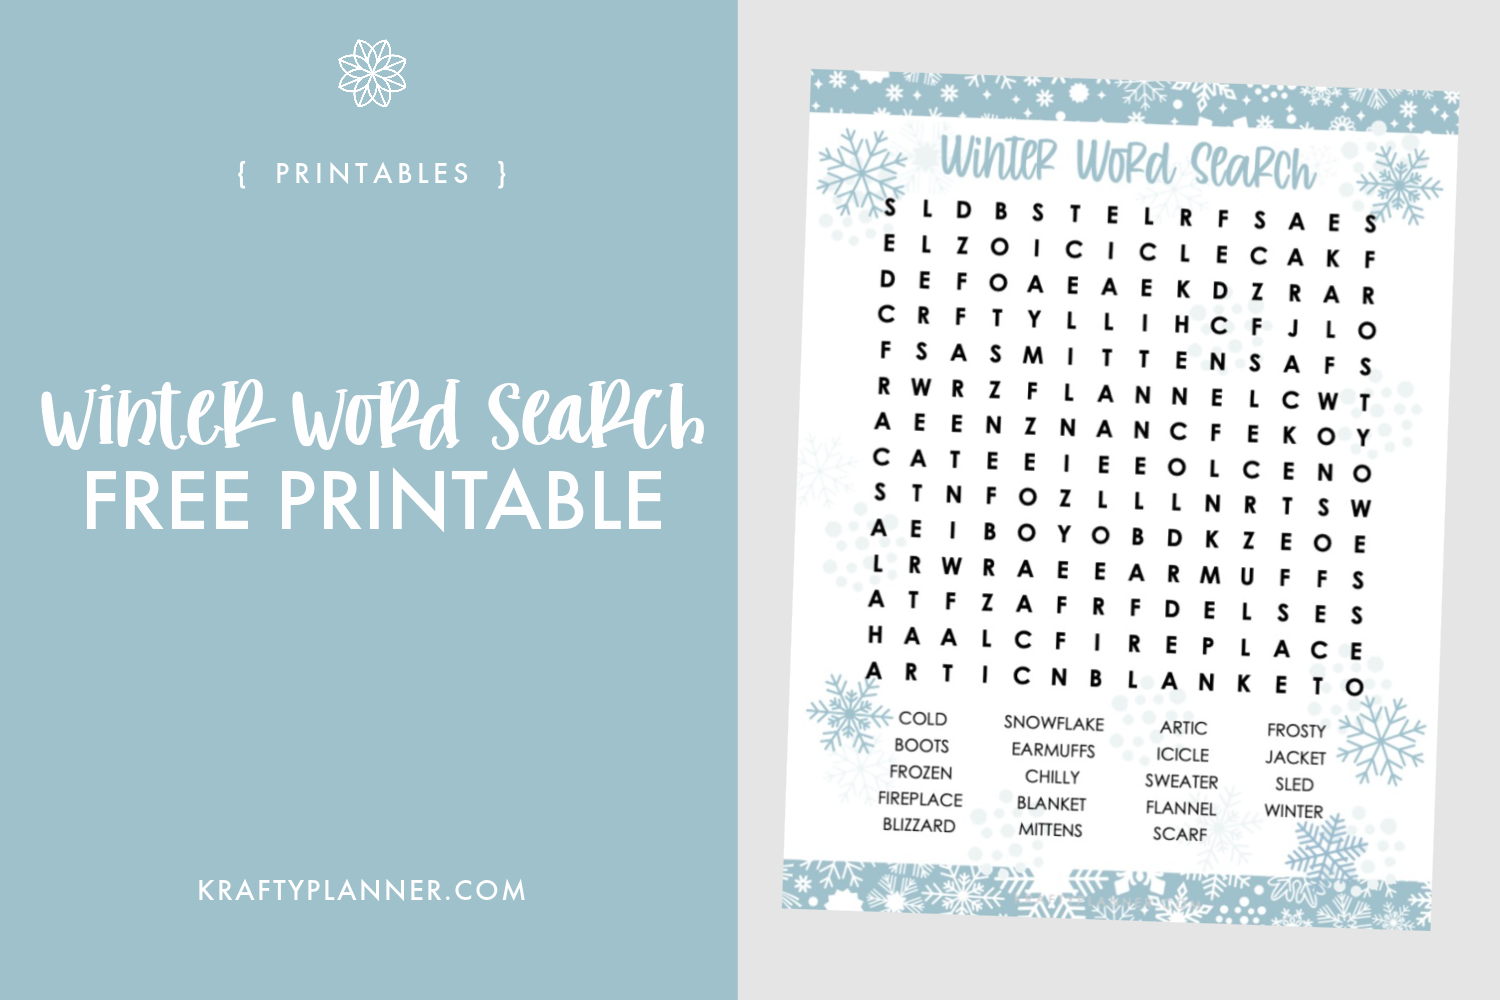 Winter Word Search Free Printable